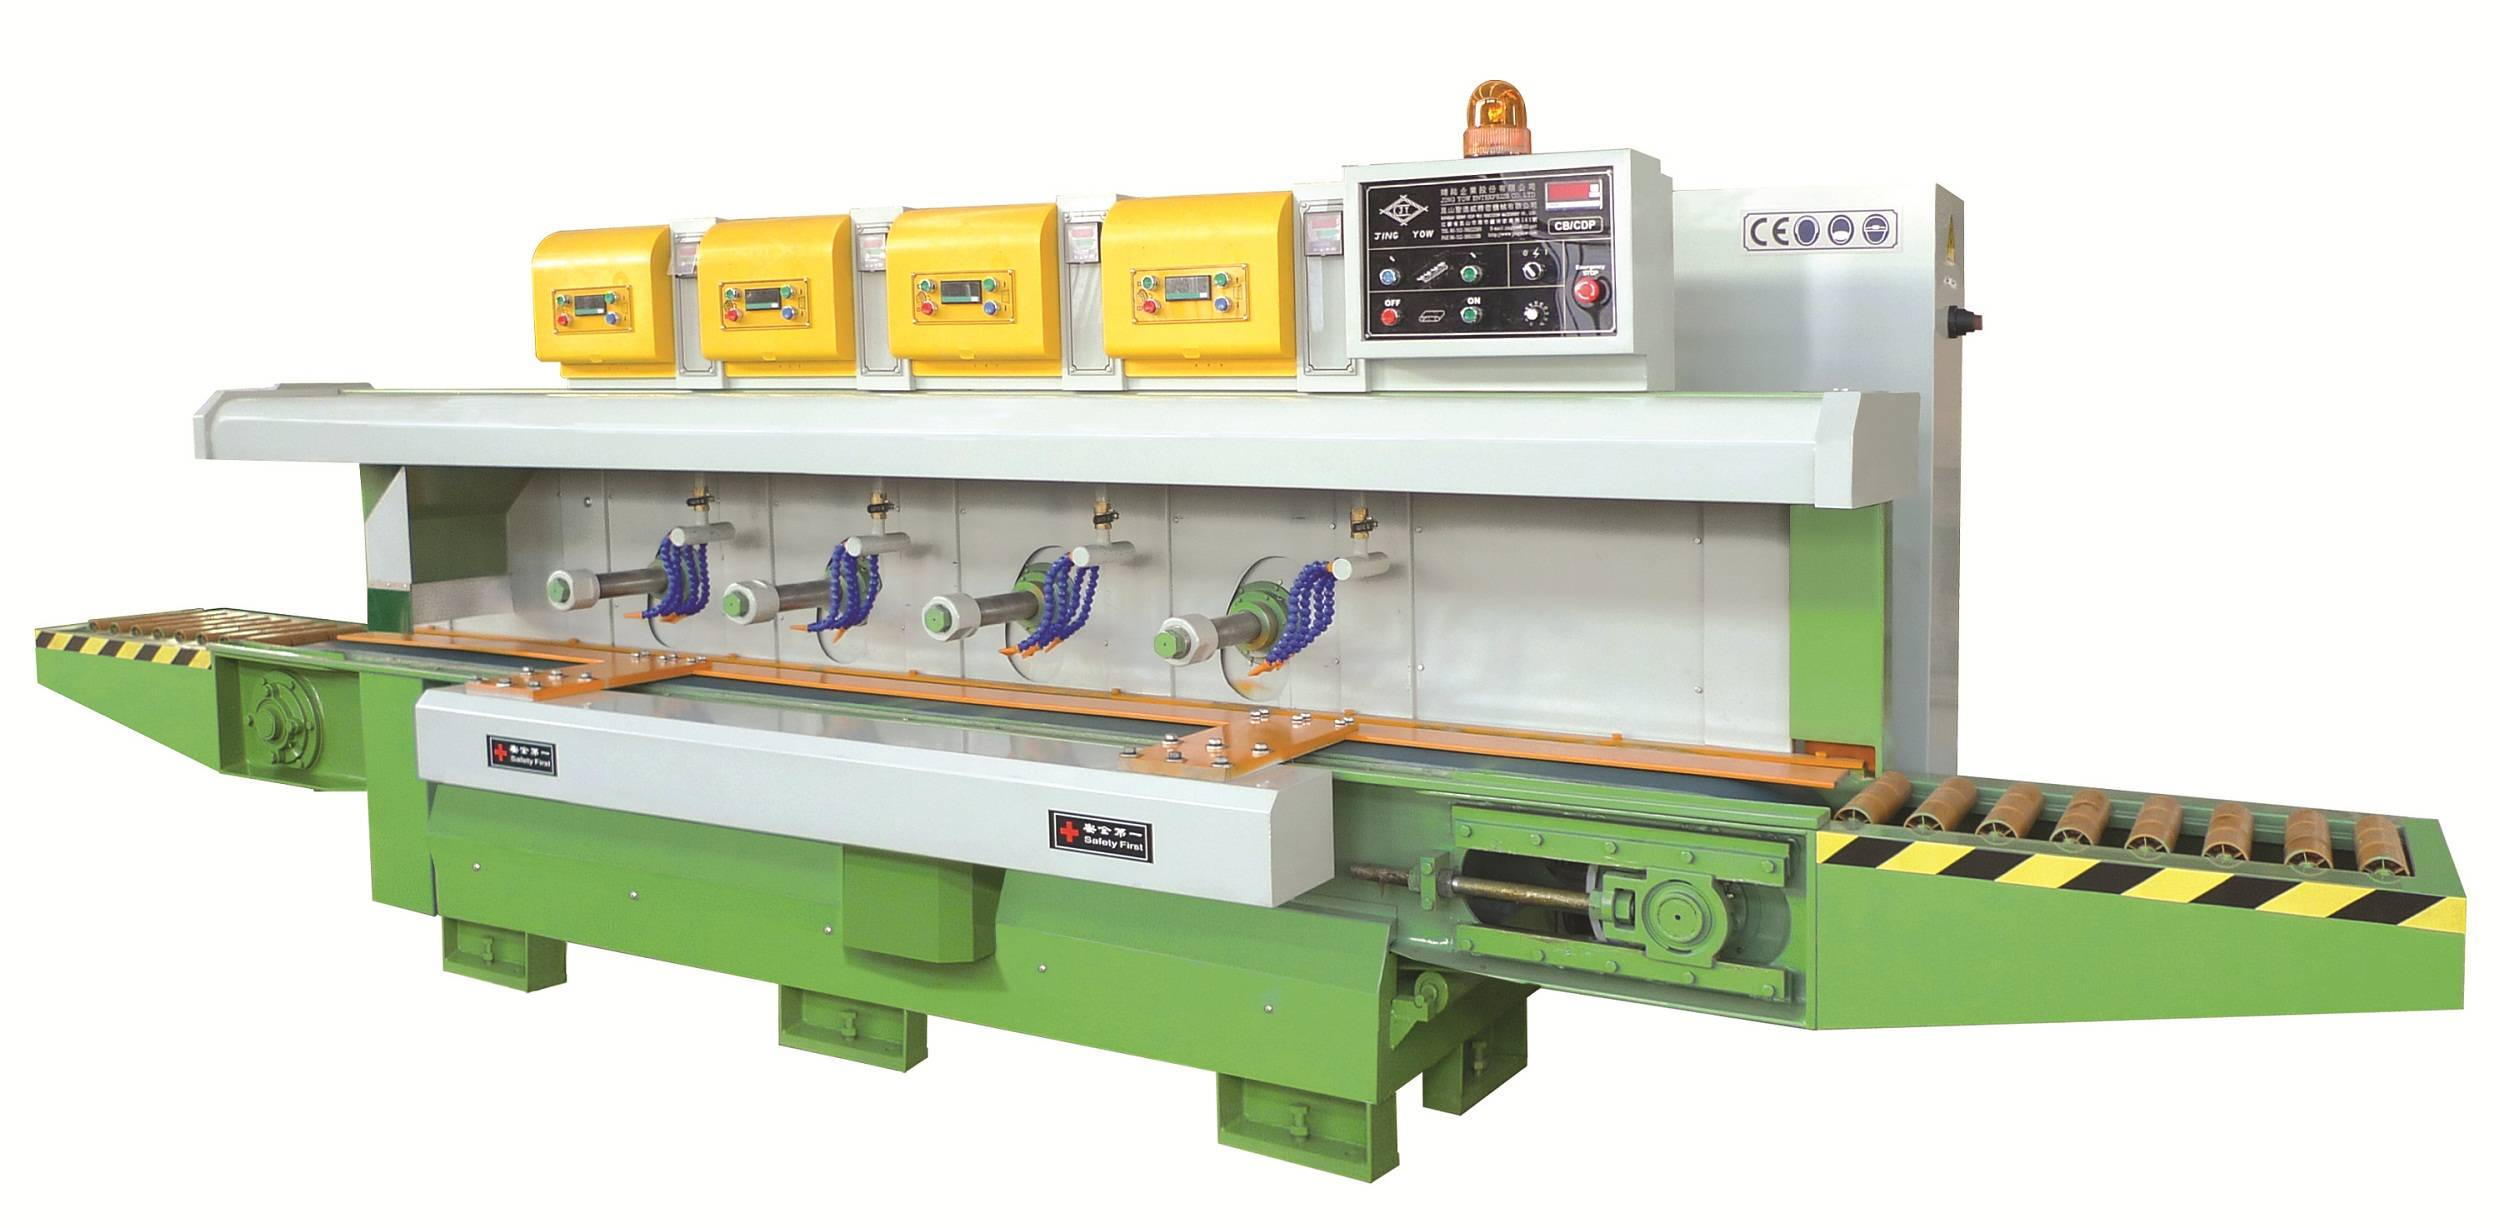 4 Heads Line Processing Machine(Molding) CB/CDP-4